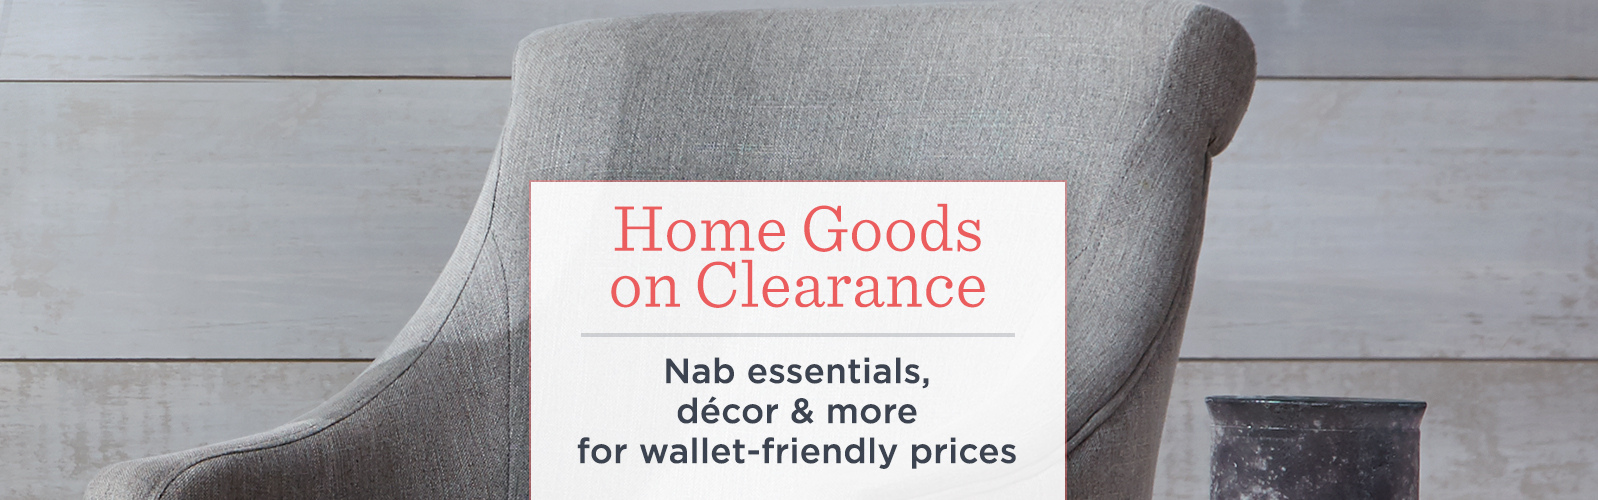 Home Goods on Clearance. Nab essentials, décor & more for wallet-friendly prices